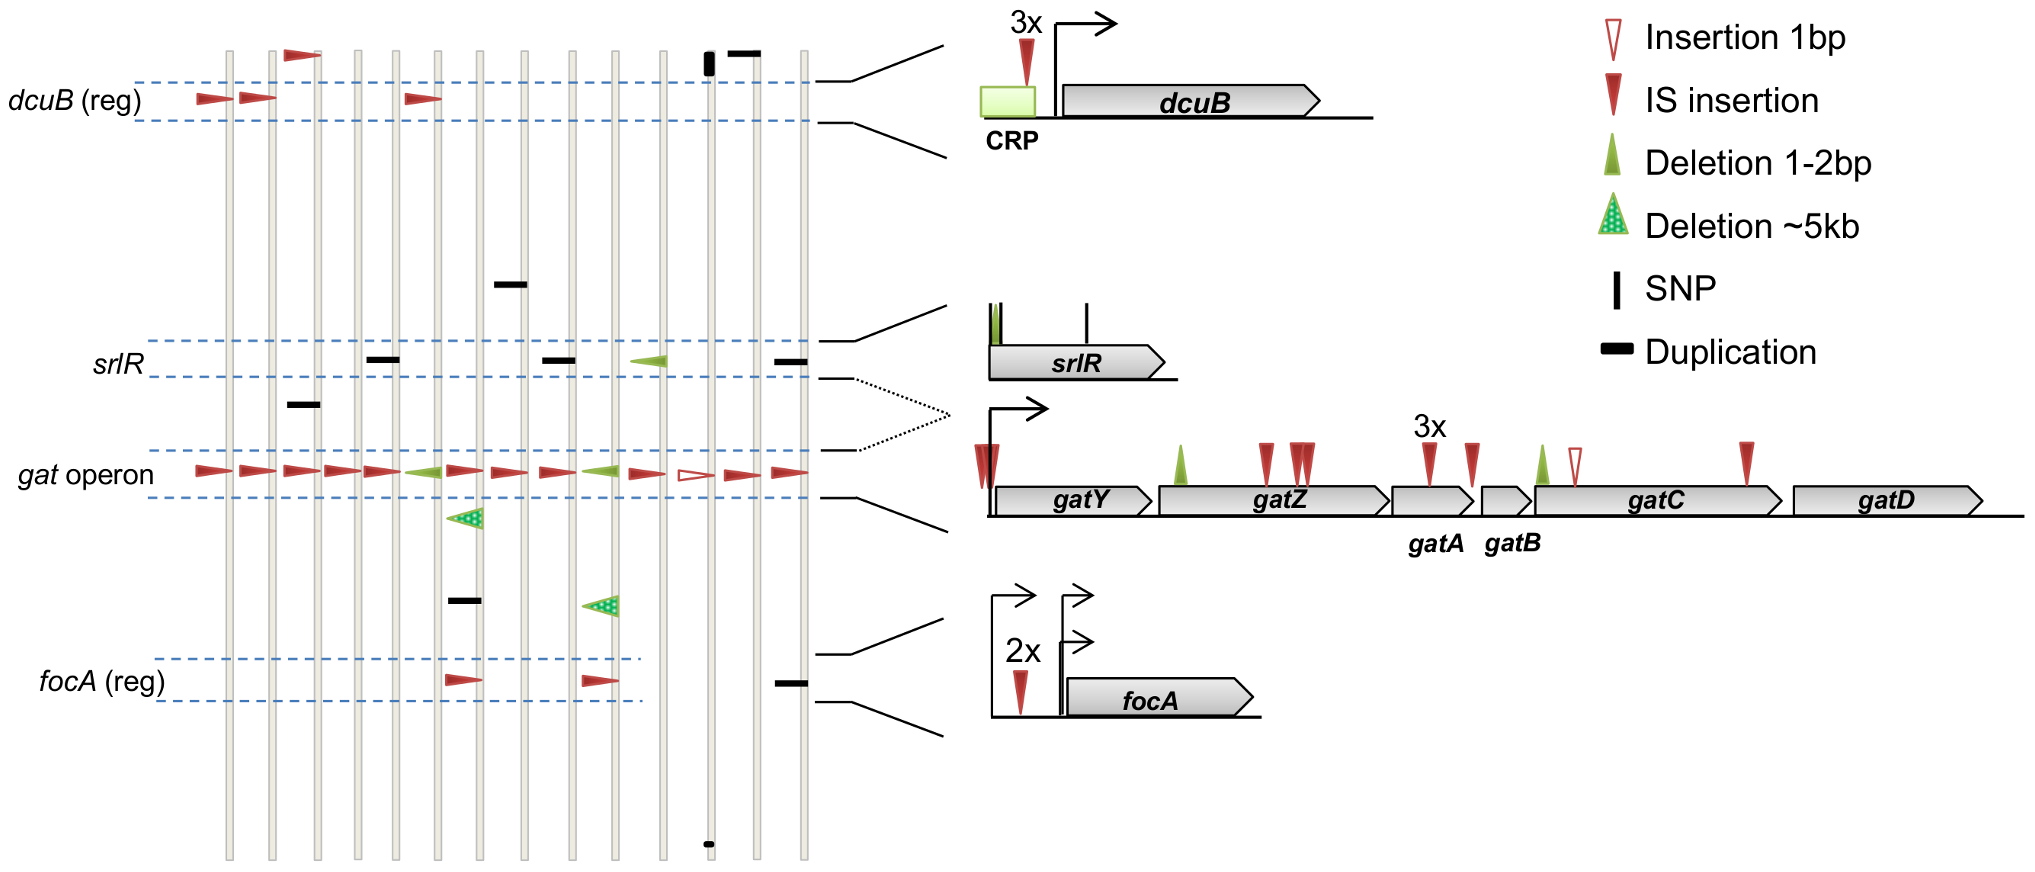 The genetic basis of adaptive mutations and the level of parallelism between populations.